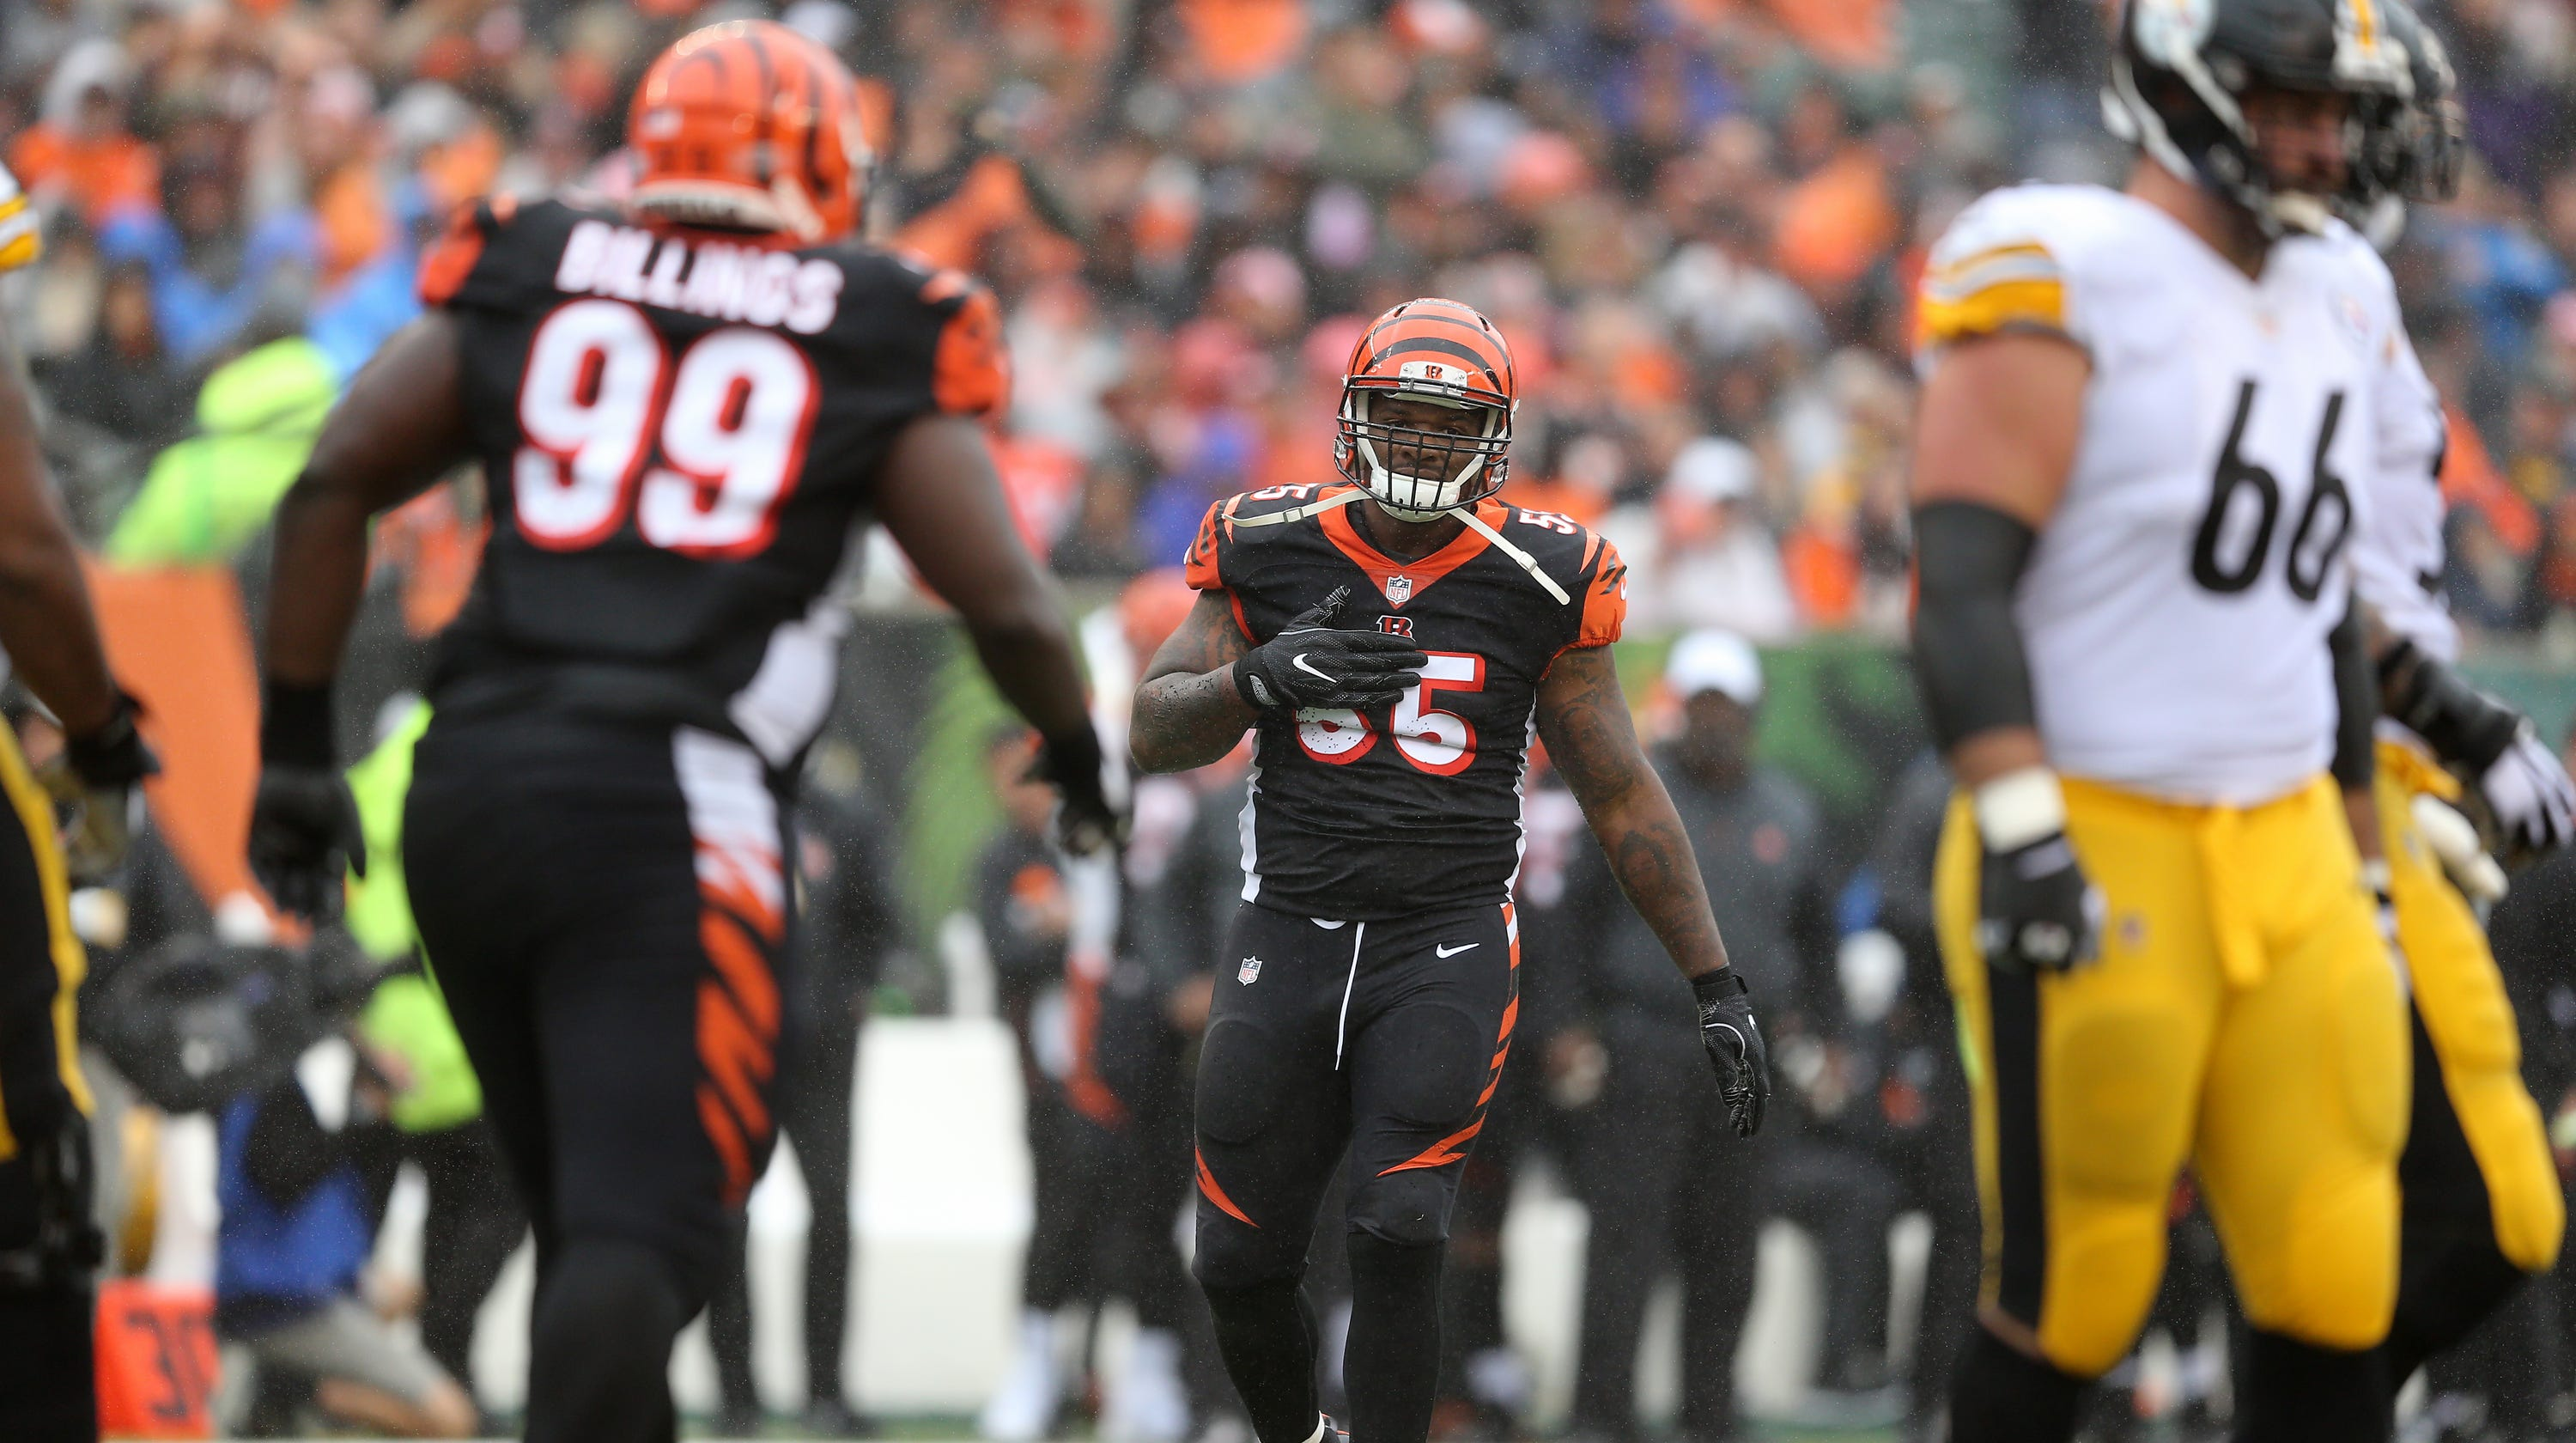 Vontaze Burfict: Analyst says Bengals' owner, coach should